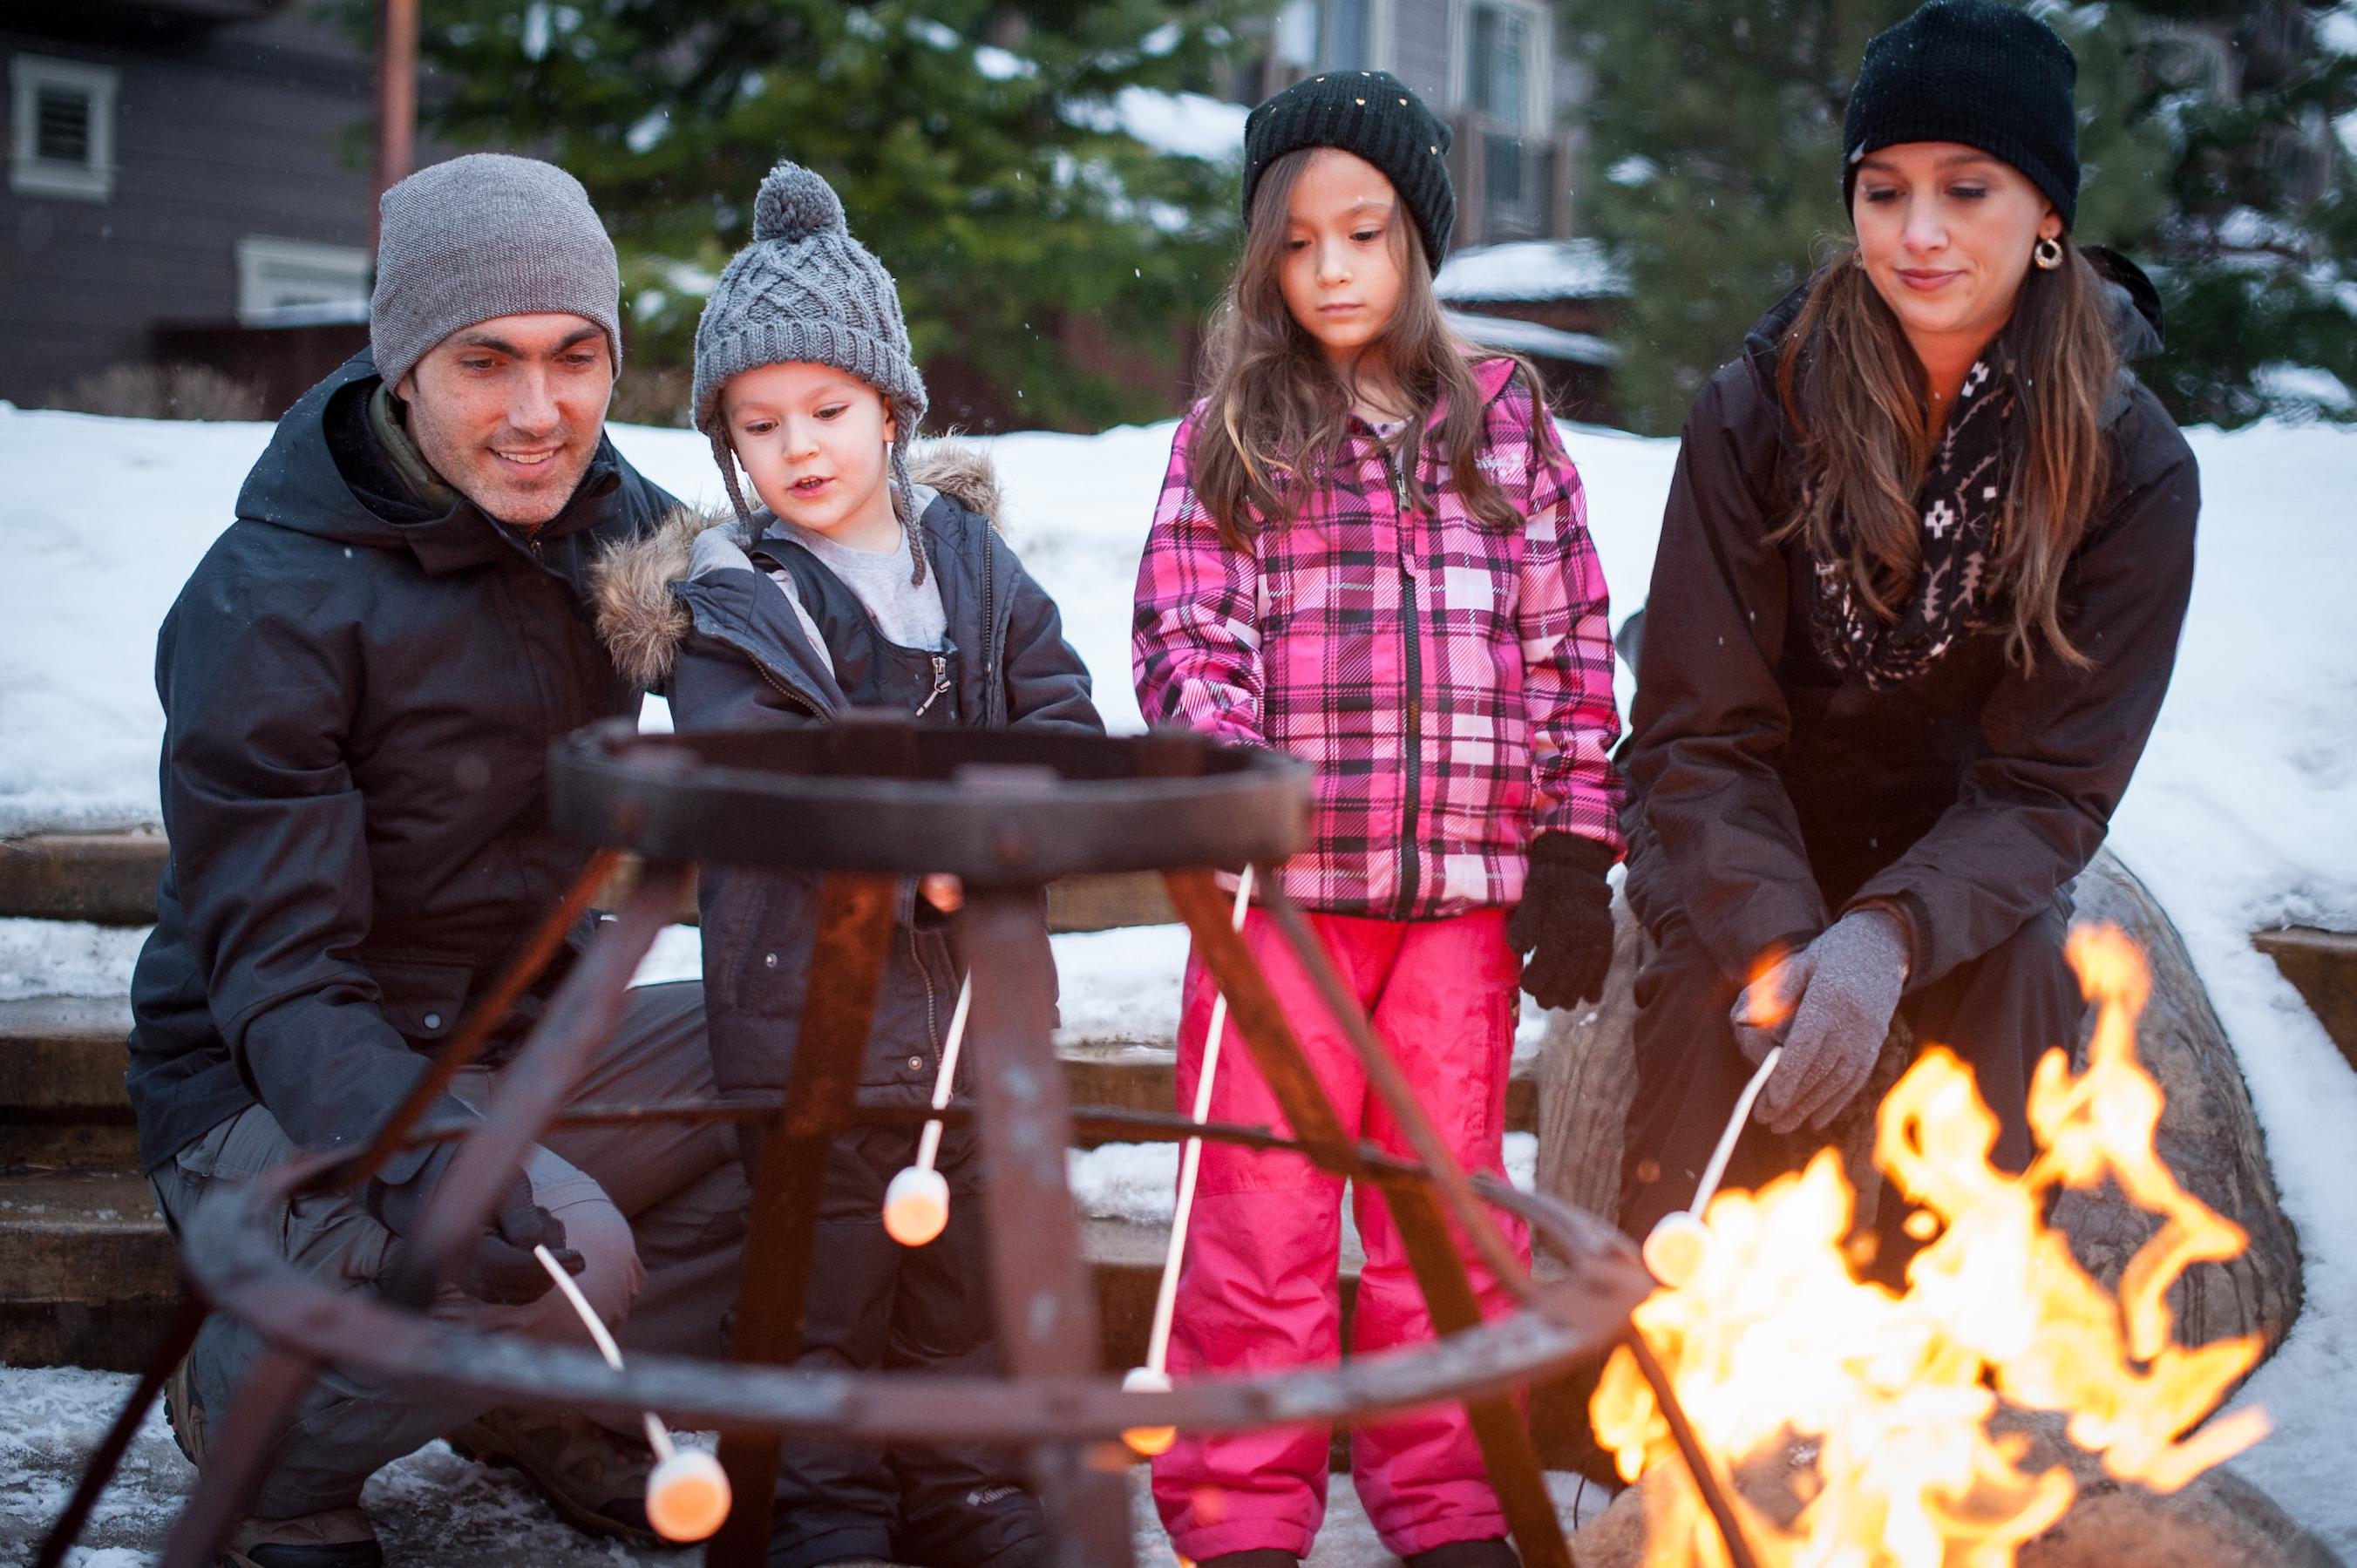 Gather around the fire pit at the Lodge at Suncadia to enjoy complimentary S'mores.